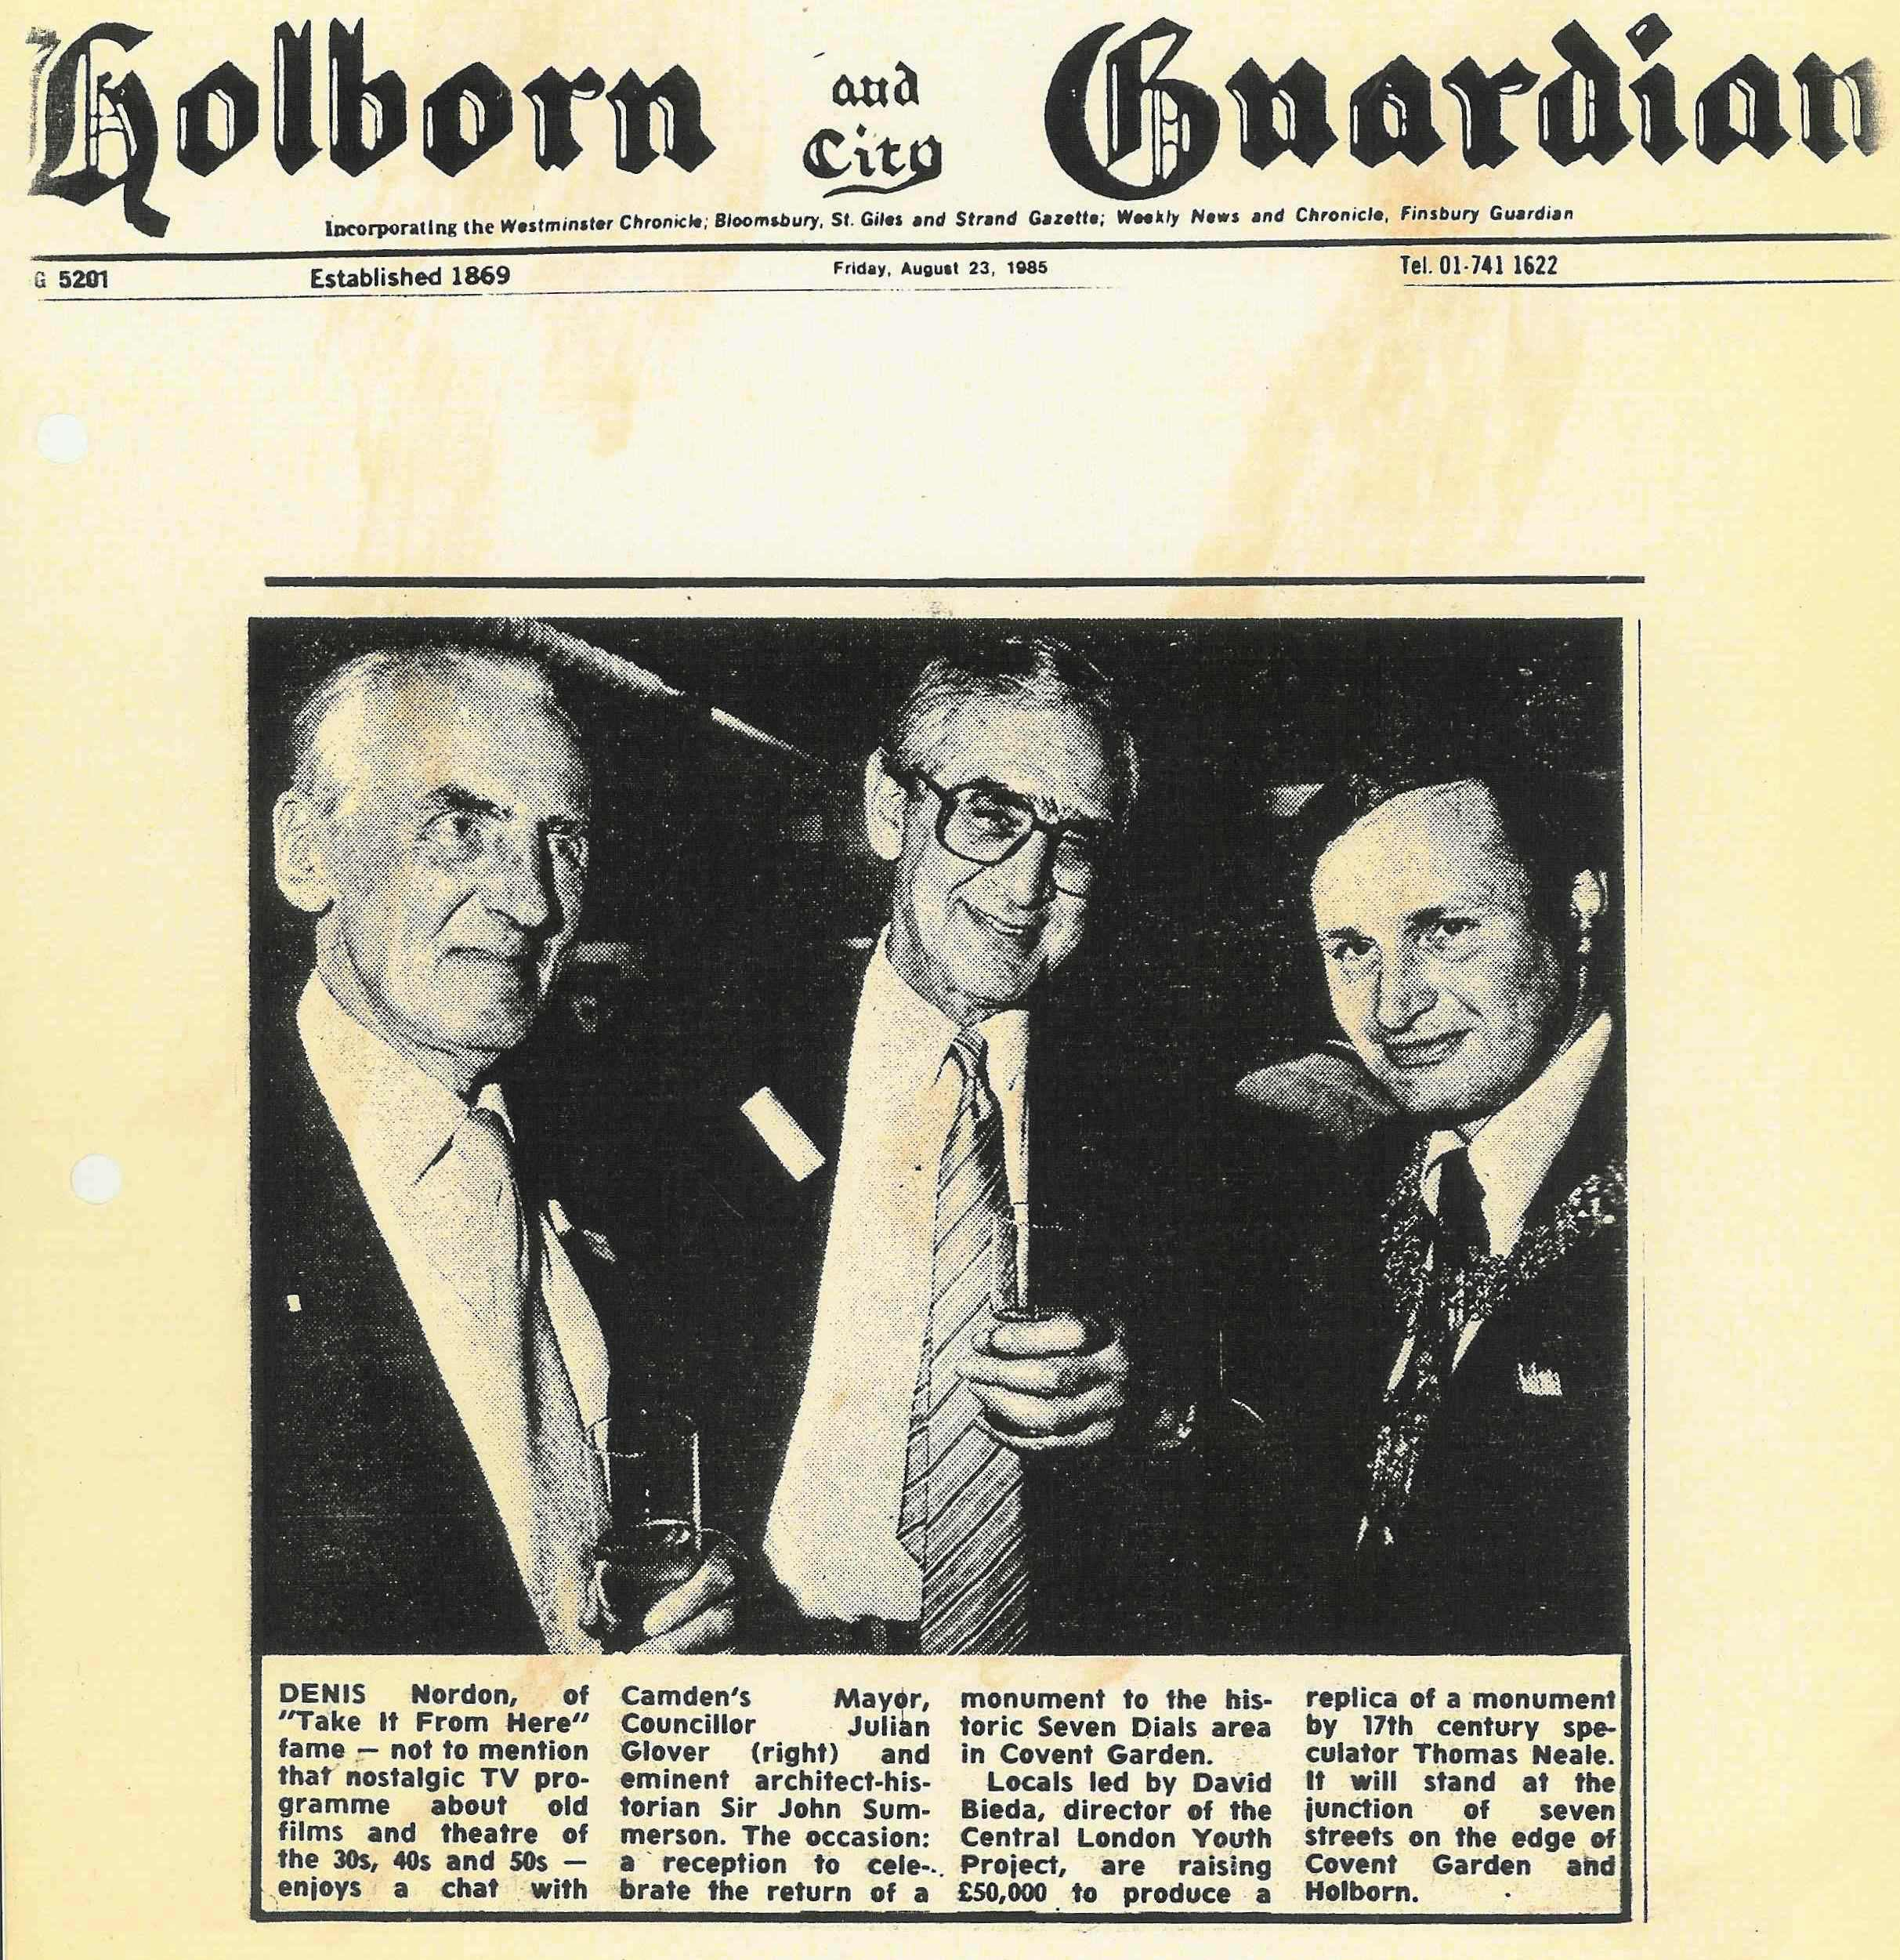 23 Aug. 1985 – Holborn and City Guardian : Denis Nordon, Julian Glover and Sir John Summerson at the reception for the return of the Seven Dials monument.